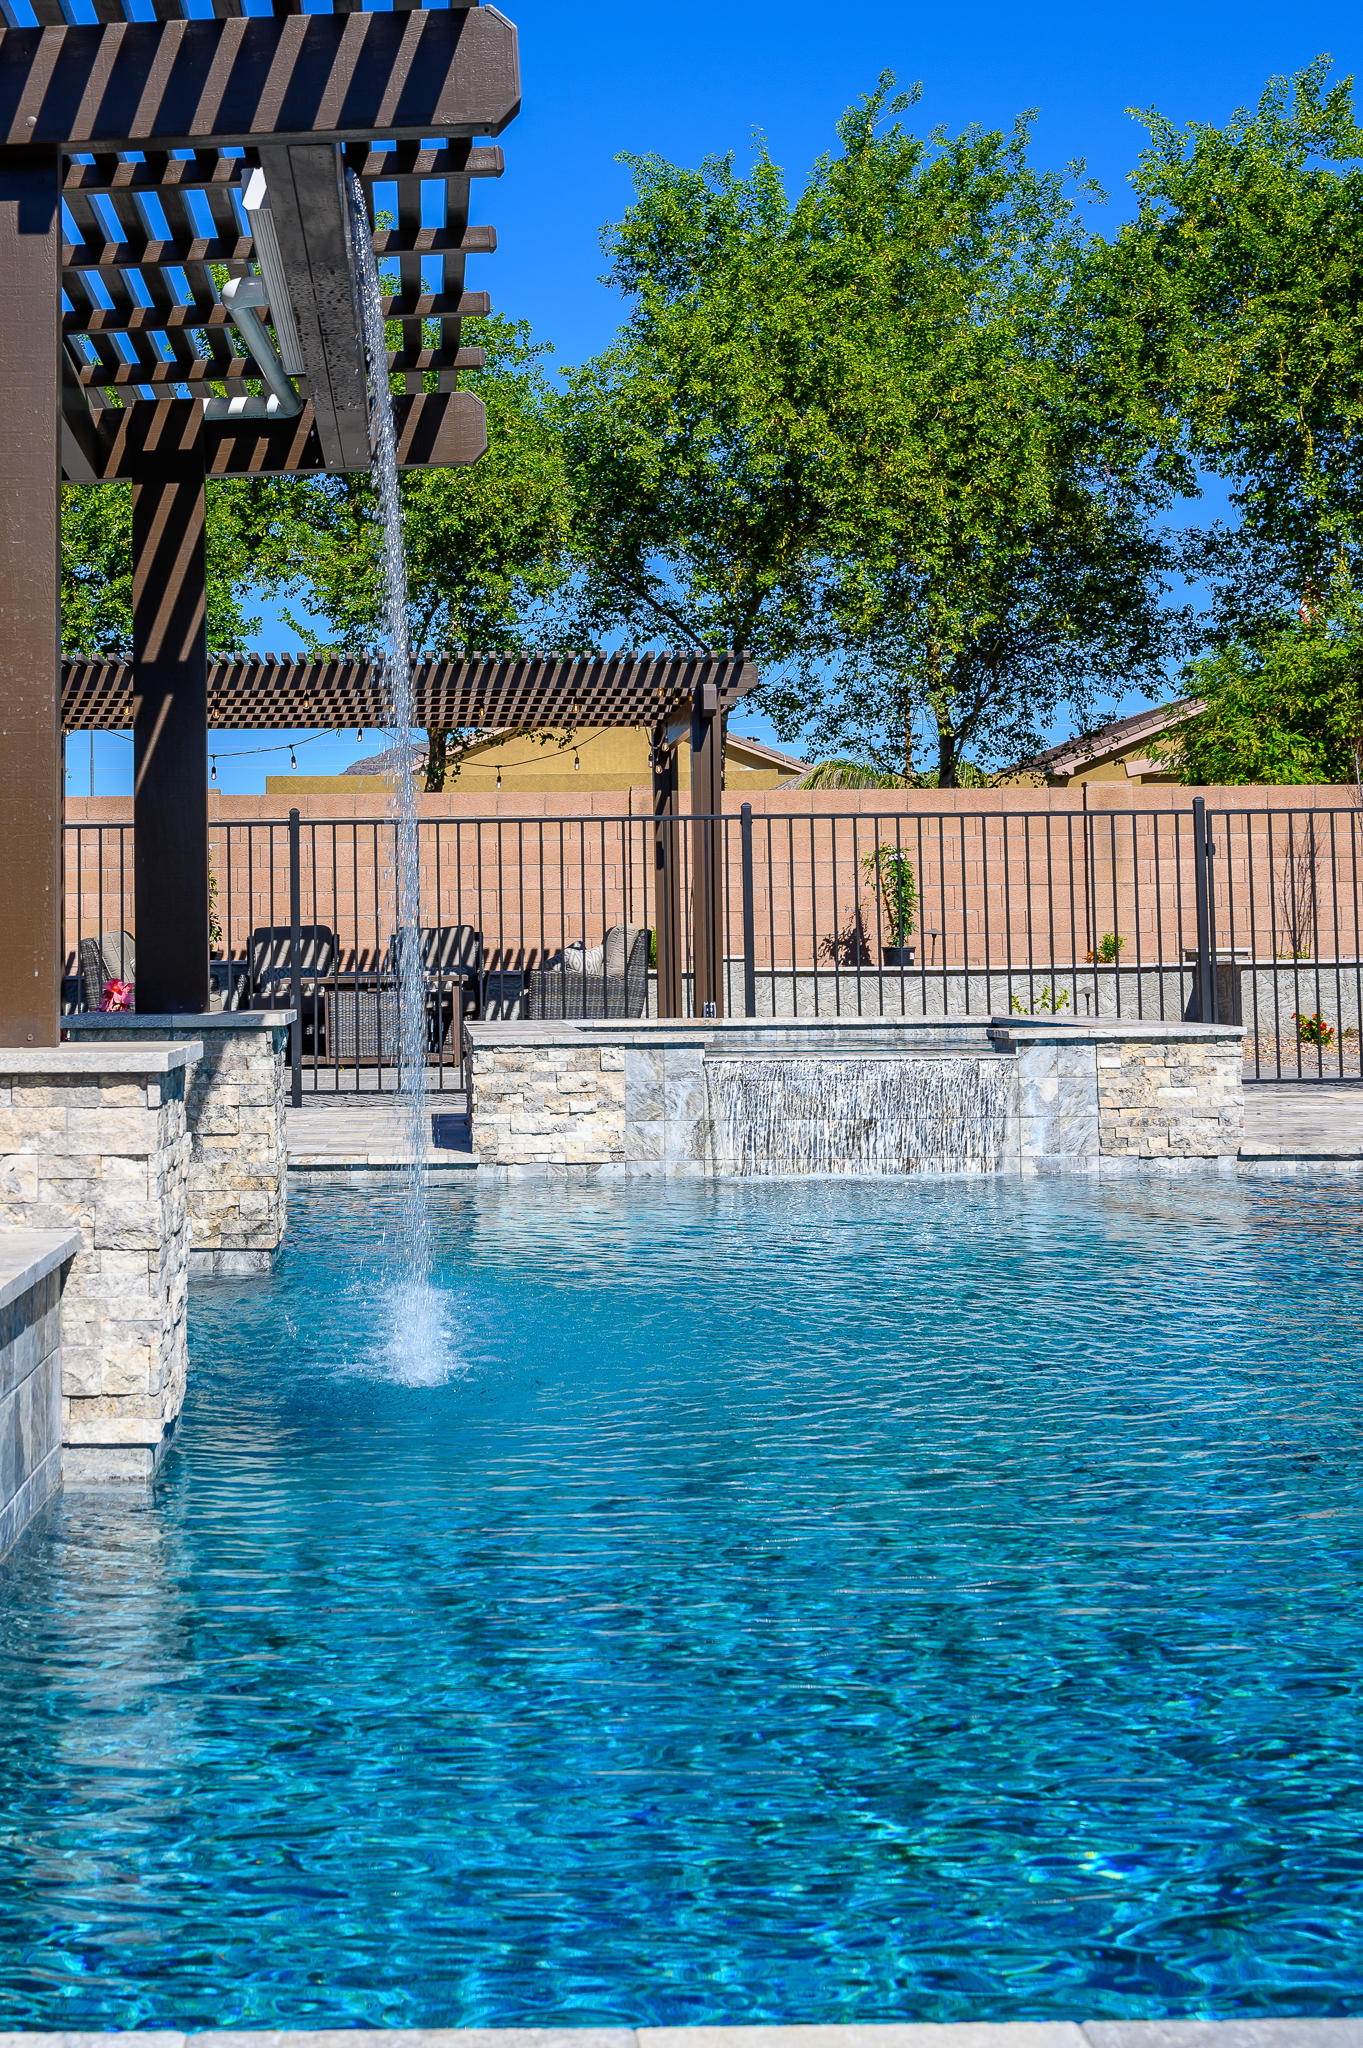 Pool Design Spotlight: Fun For The Whole Family